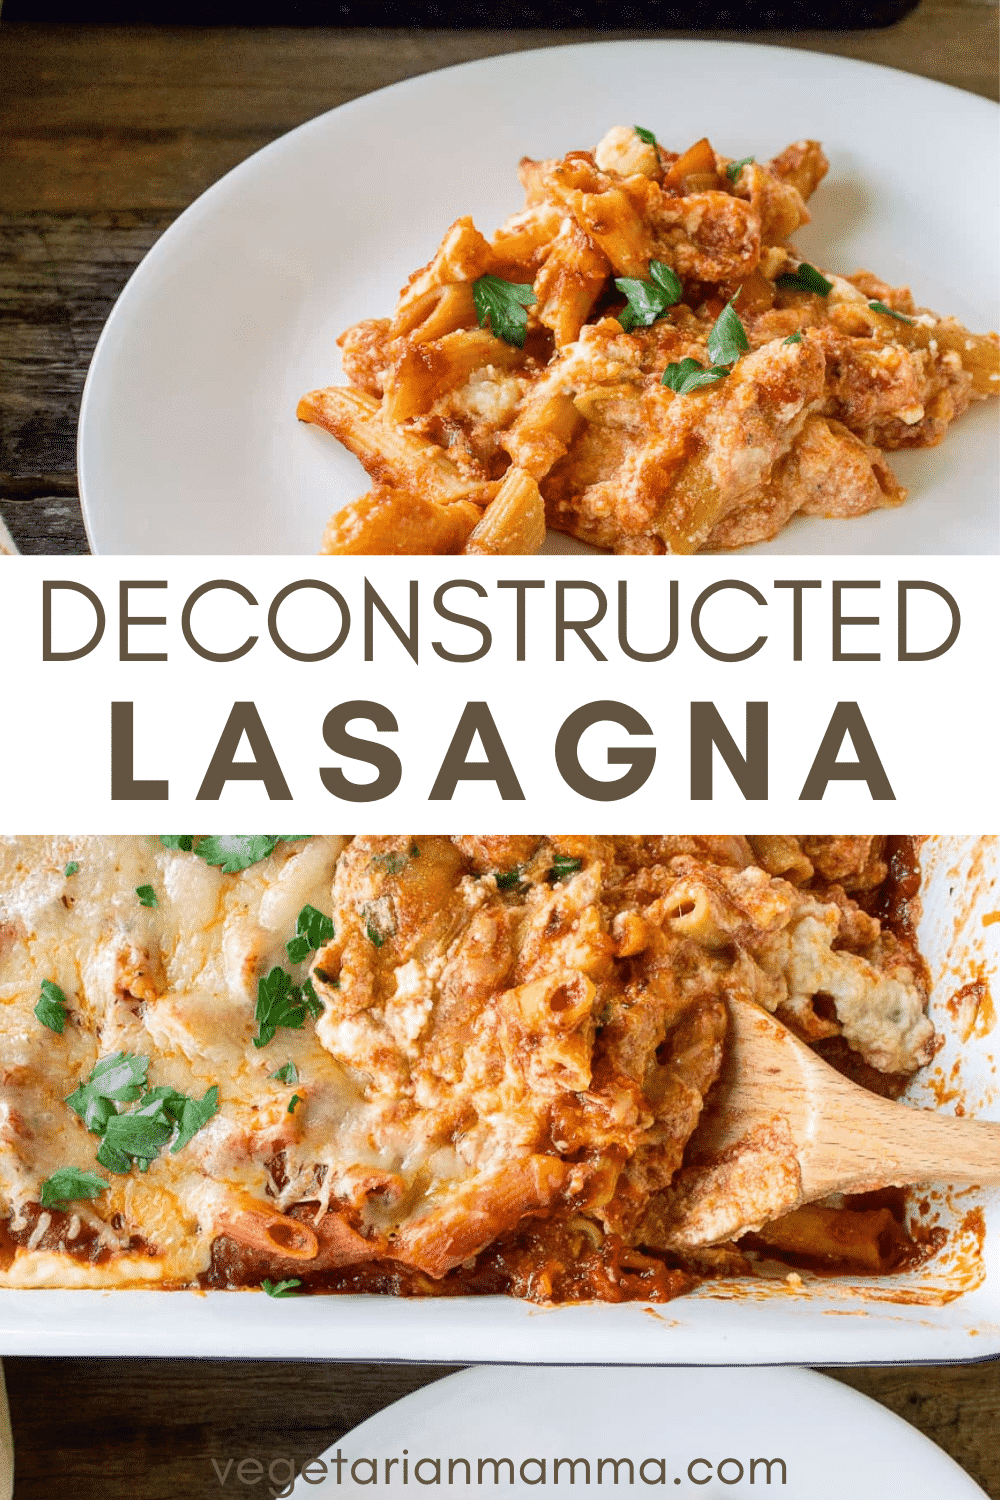 Deconstructed Lasagna is our version of the ultimate comfort food dinner. Tender noodles enveloped in flavorful sauce and topped with cheese. #deconstructedlasagna #vegetarianlasagna #lasagnarecipe